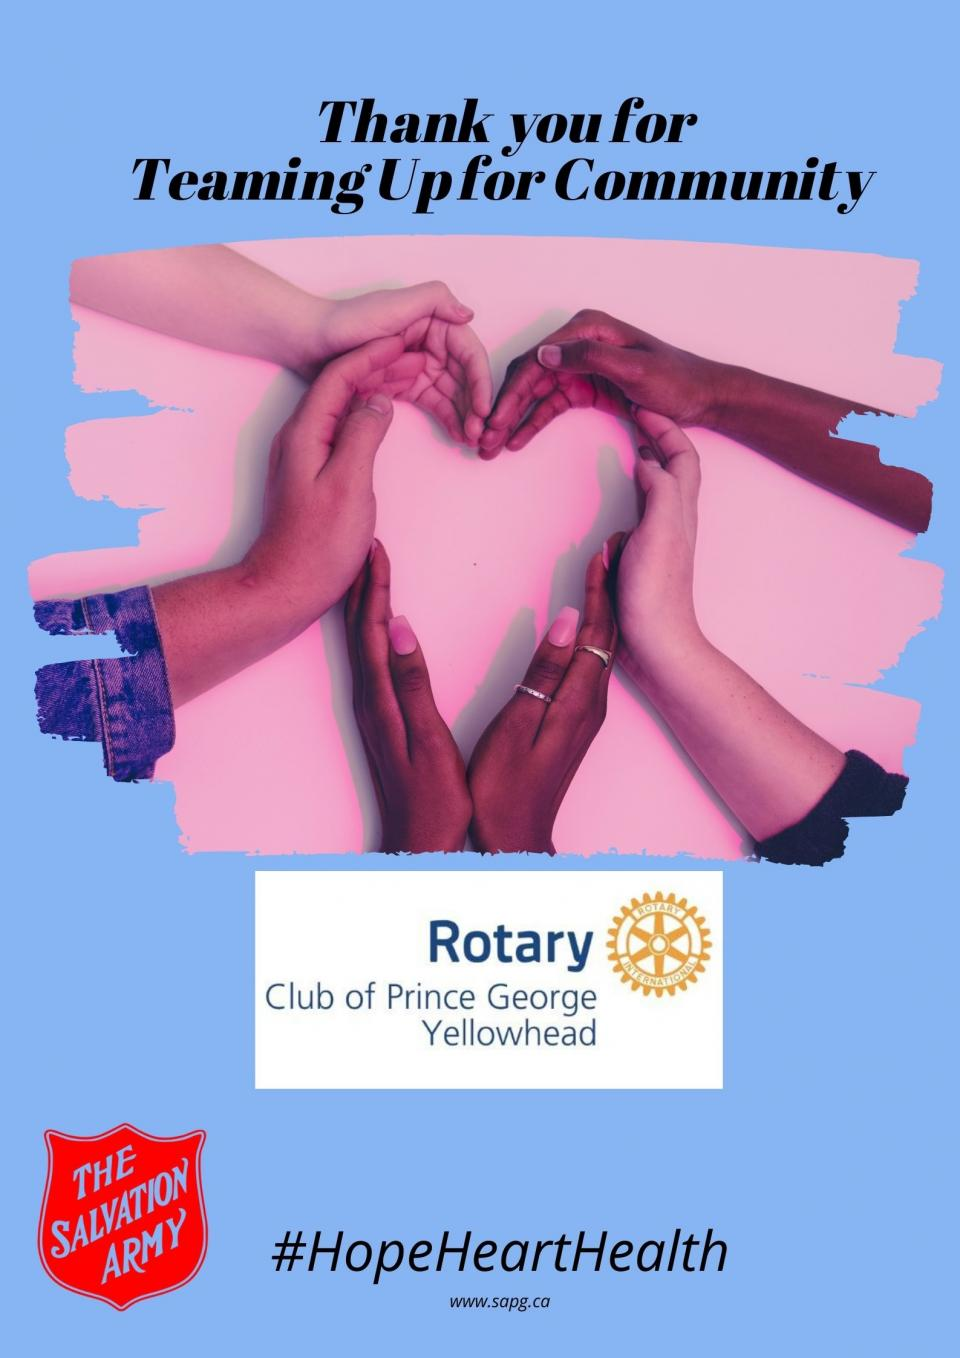 Teaming Up for the Community - Rotary